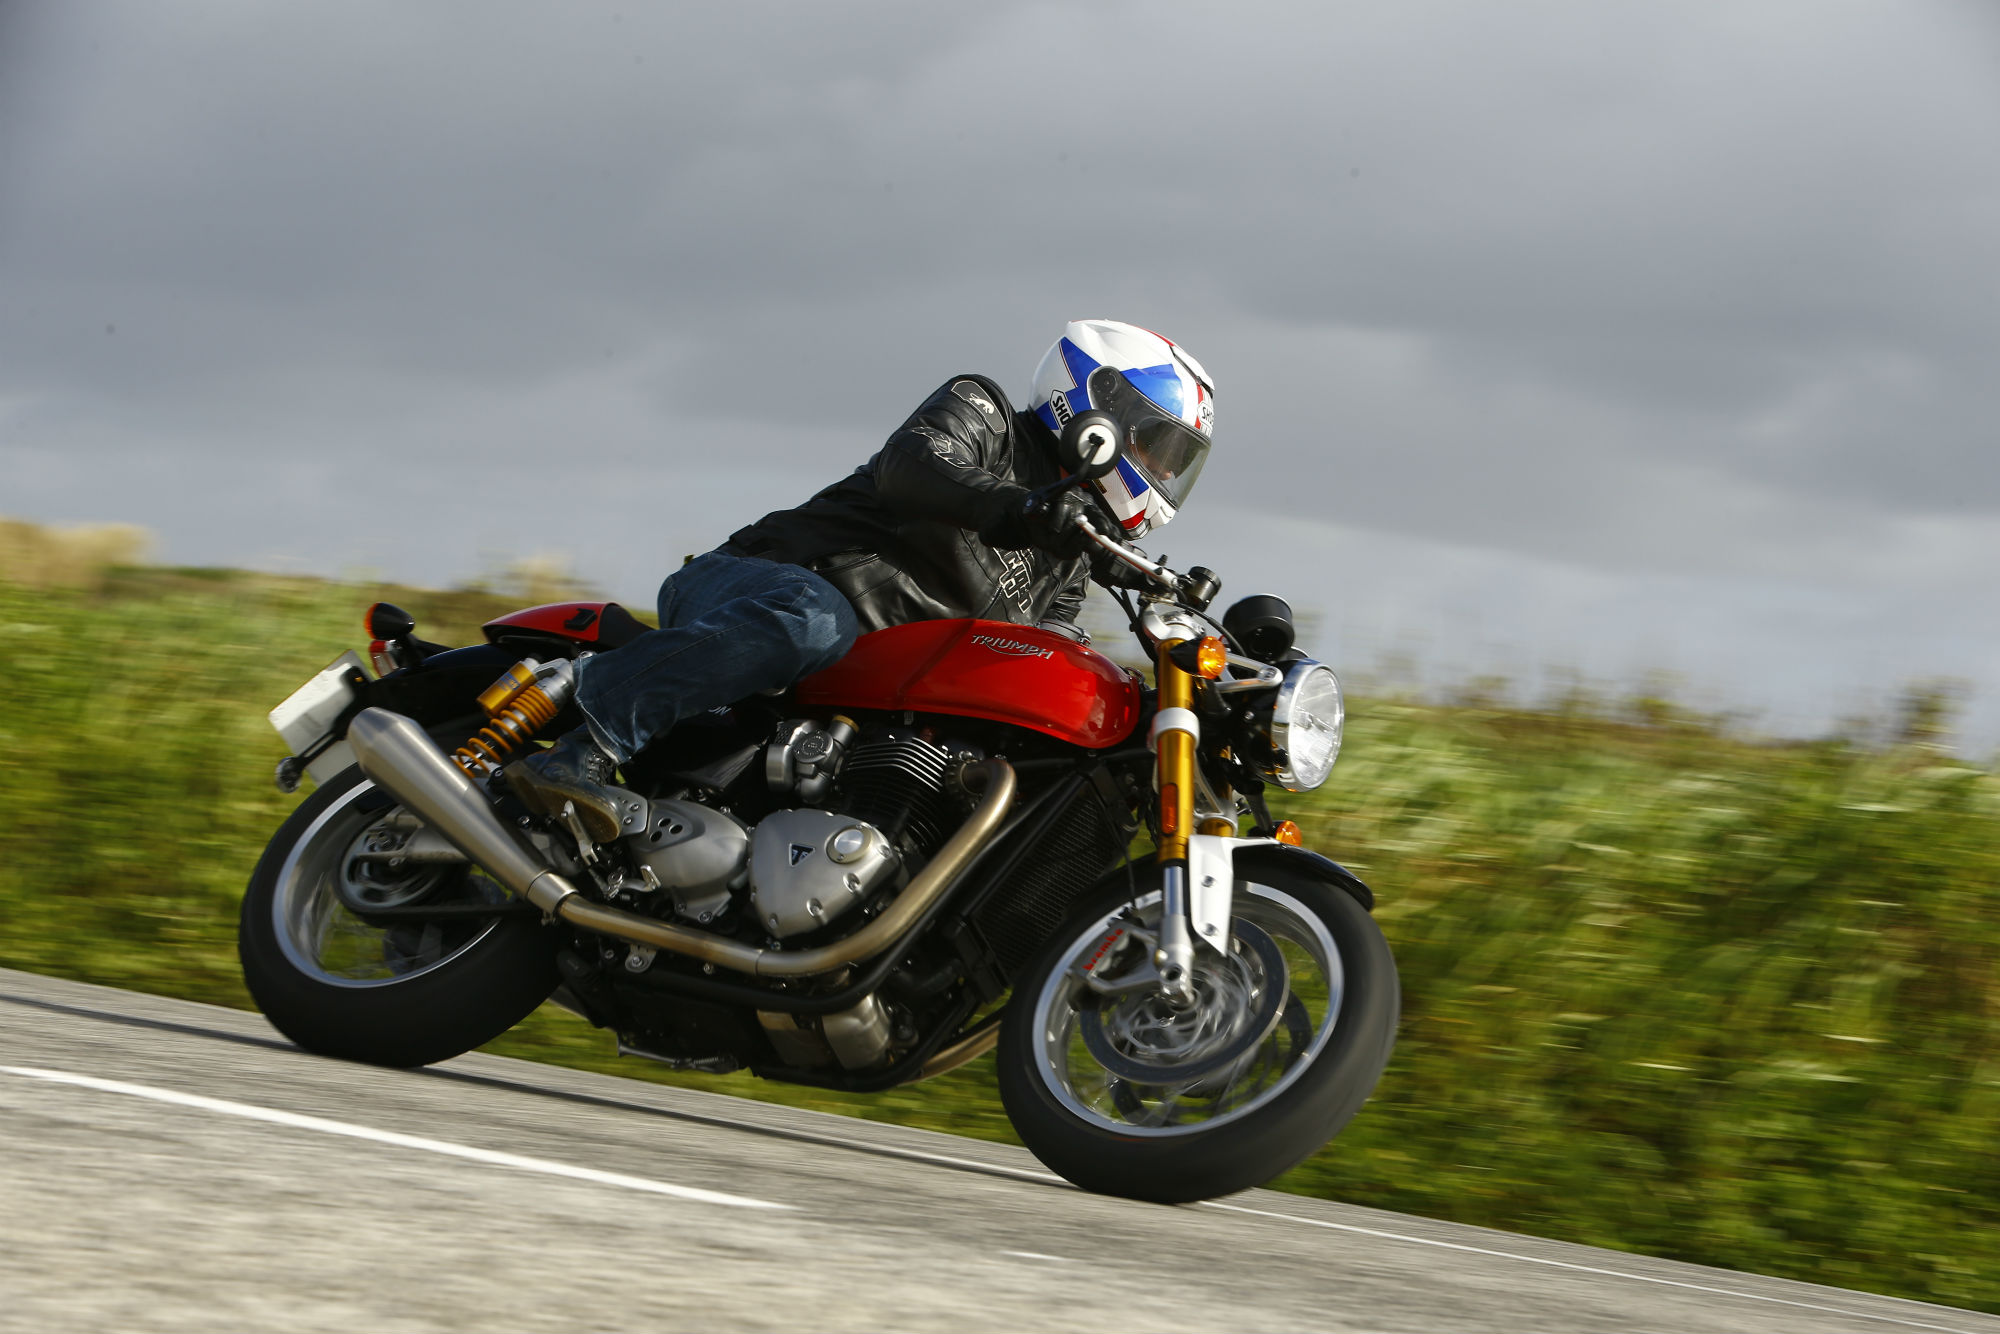 Triumph Thruxton R Review With Specs And Visordown